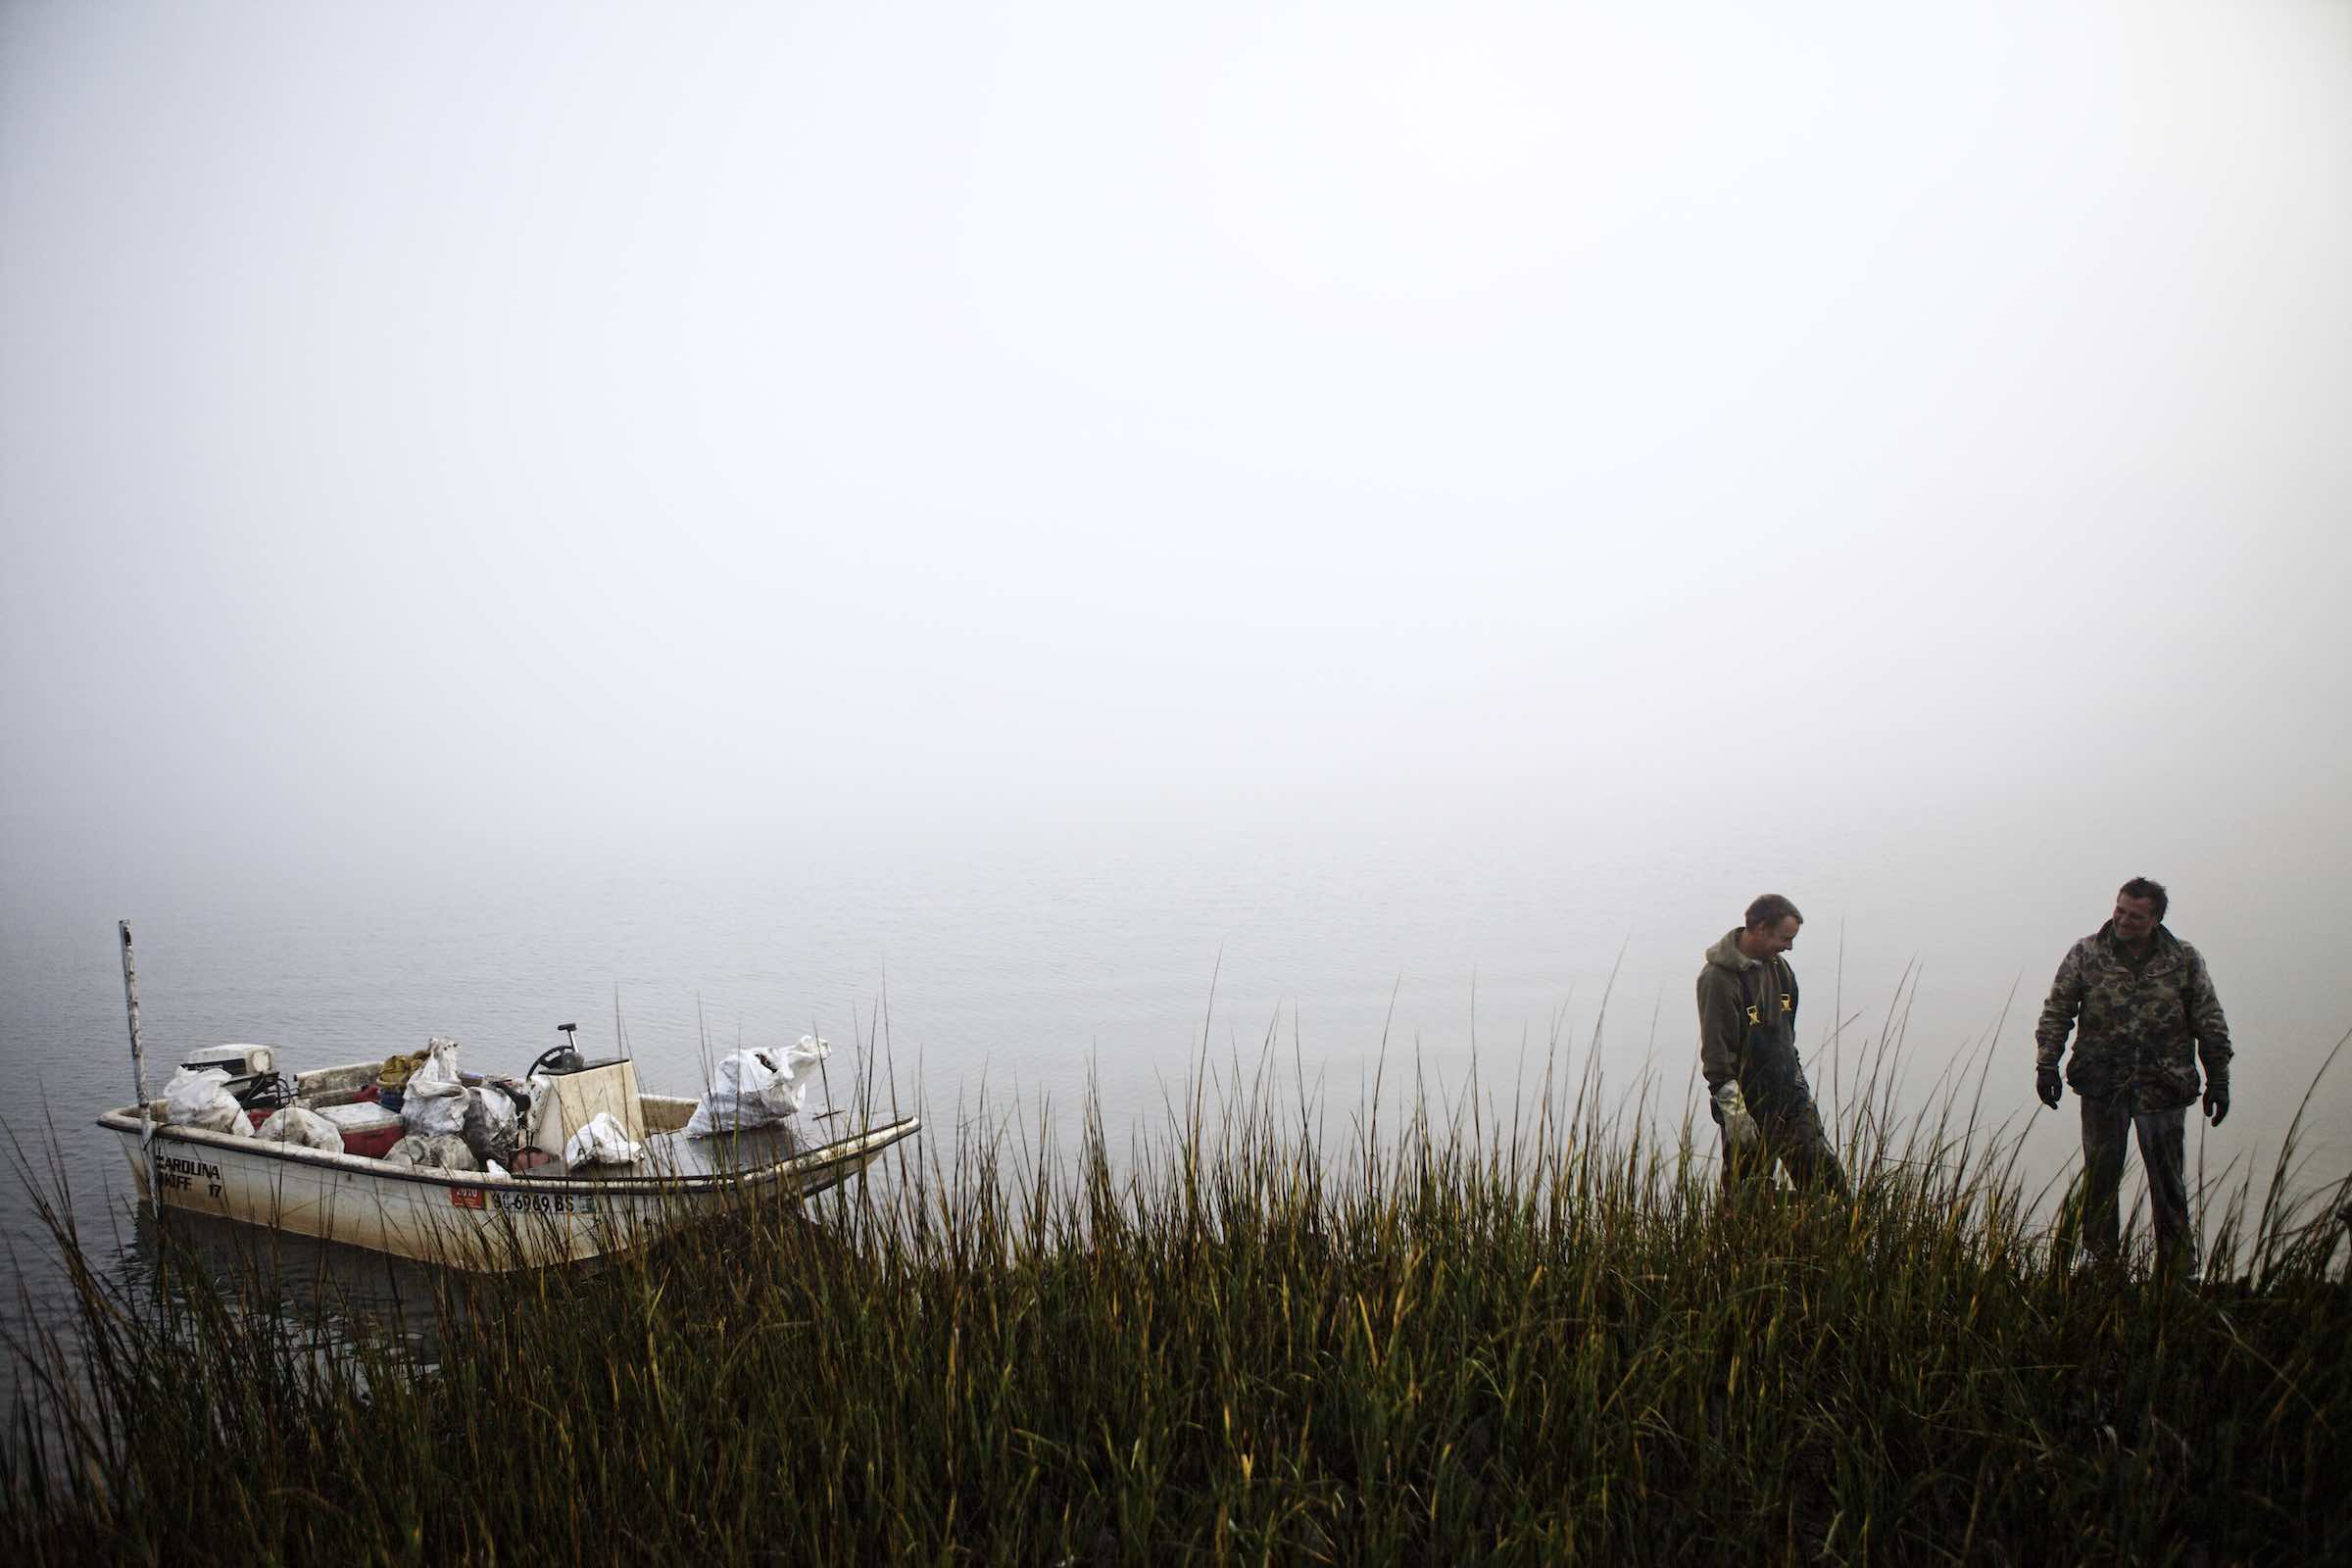 Fishermen and their boat standing behind tall marsh grasses.